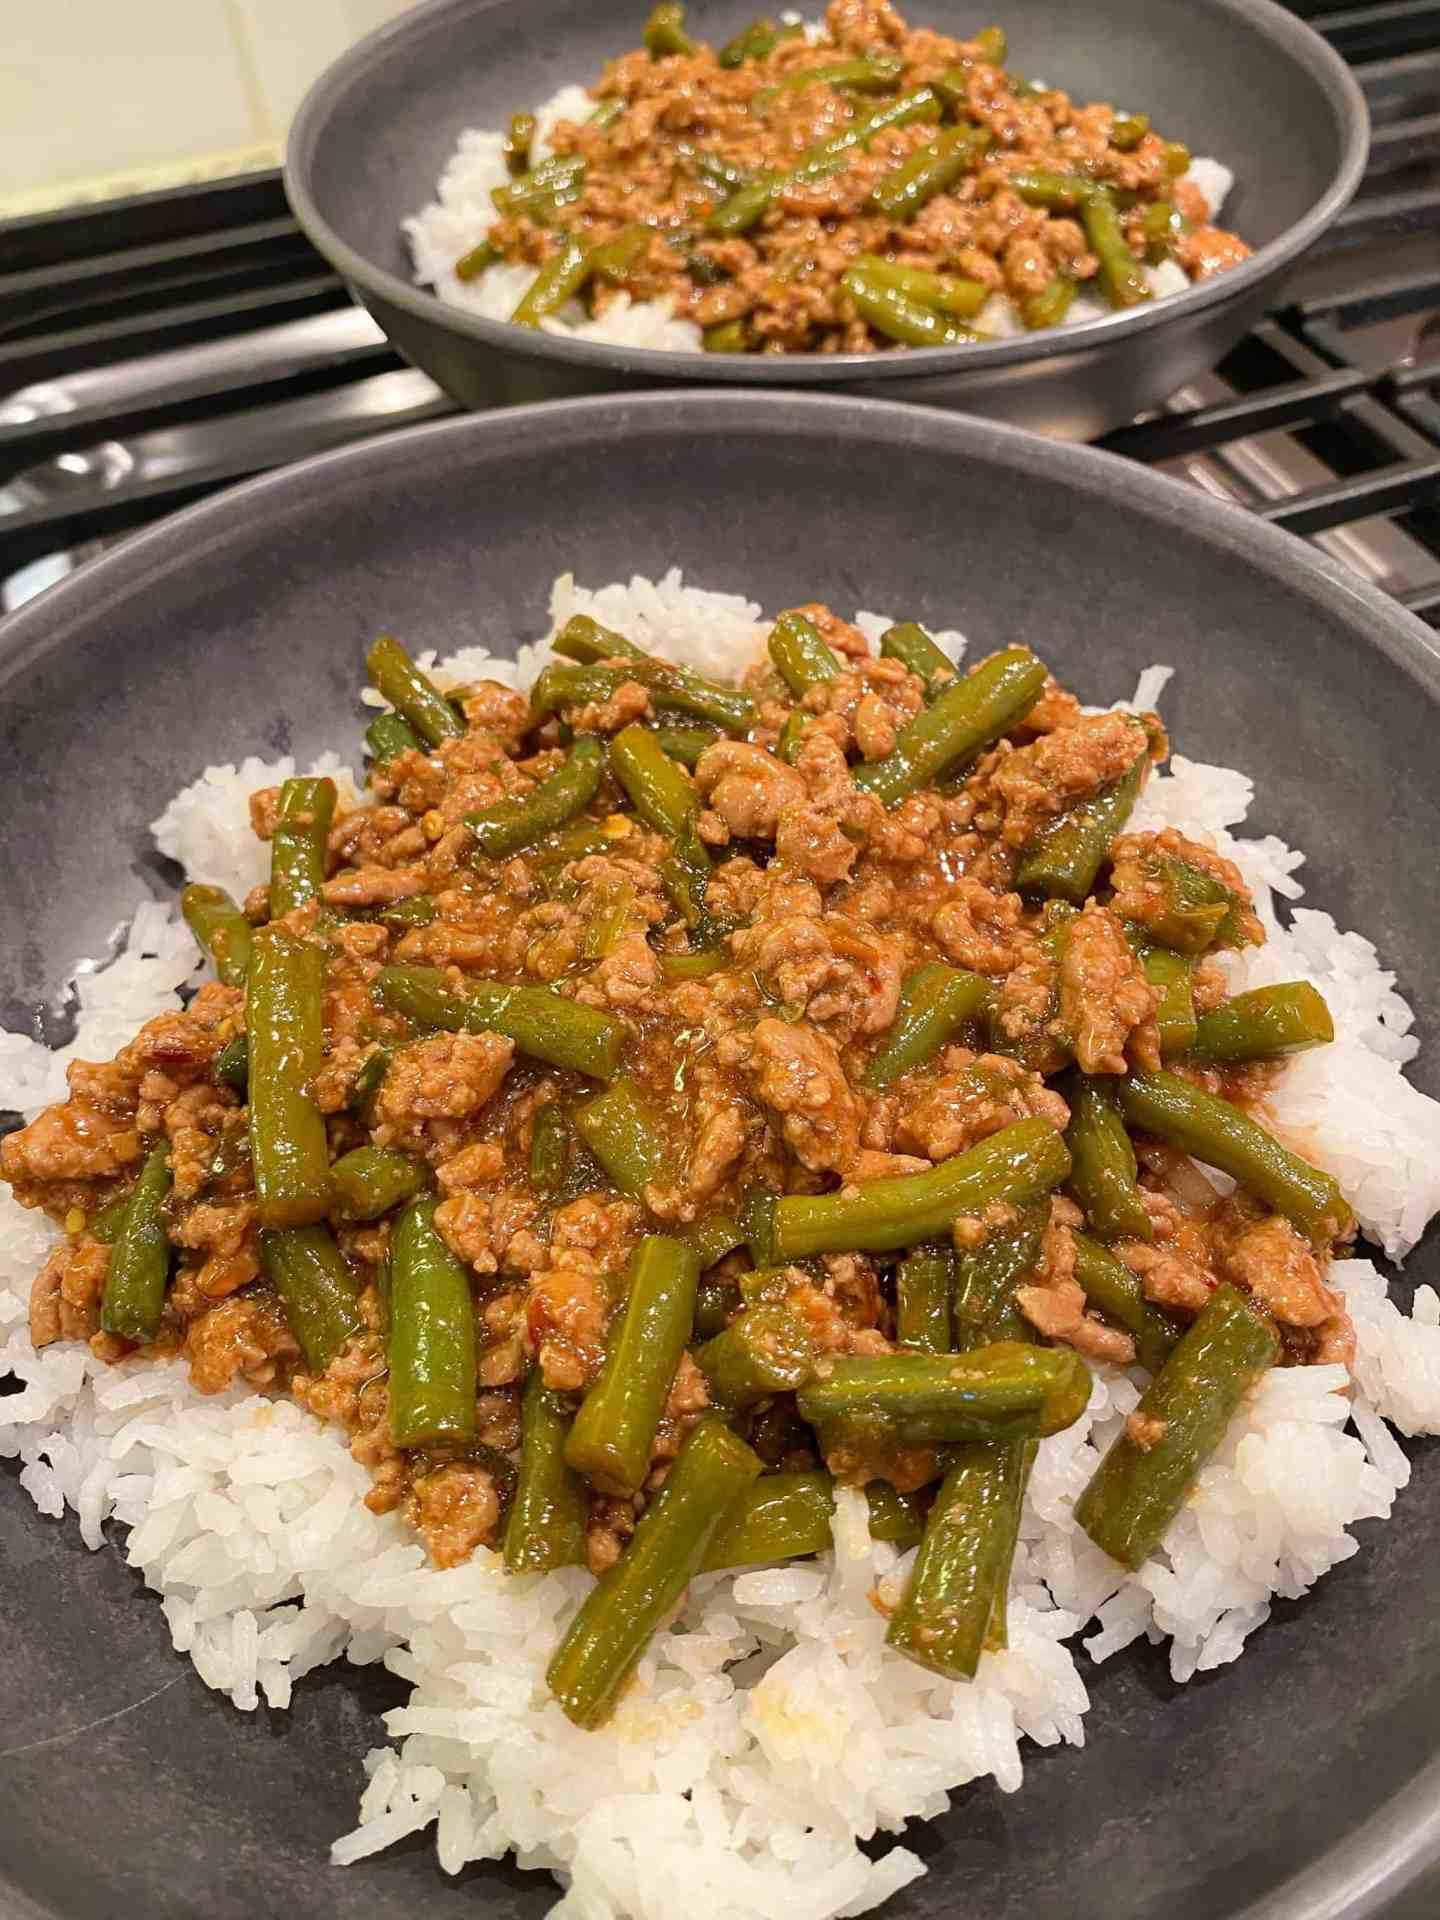 Sweet-and-Spicy-Turkey-and-Green-Bean-Stir-Fry-finished